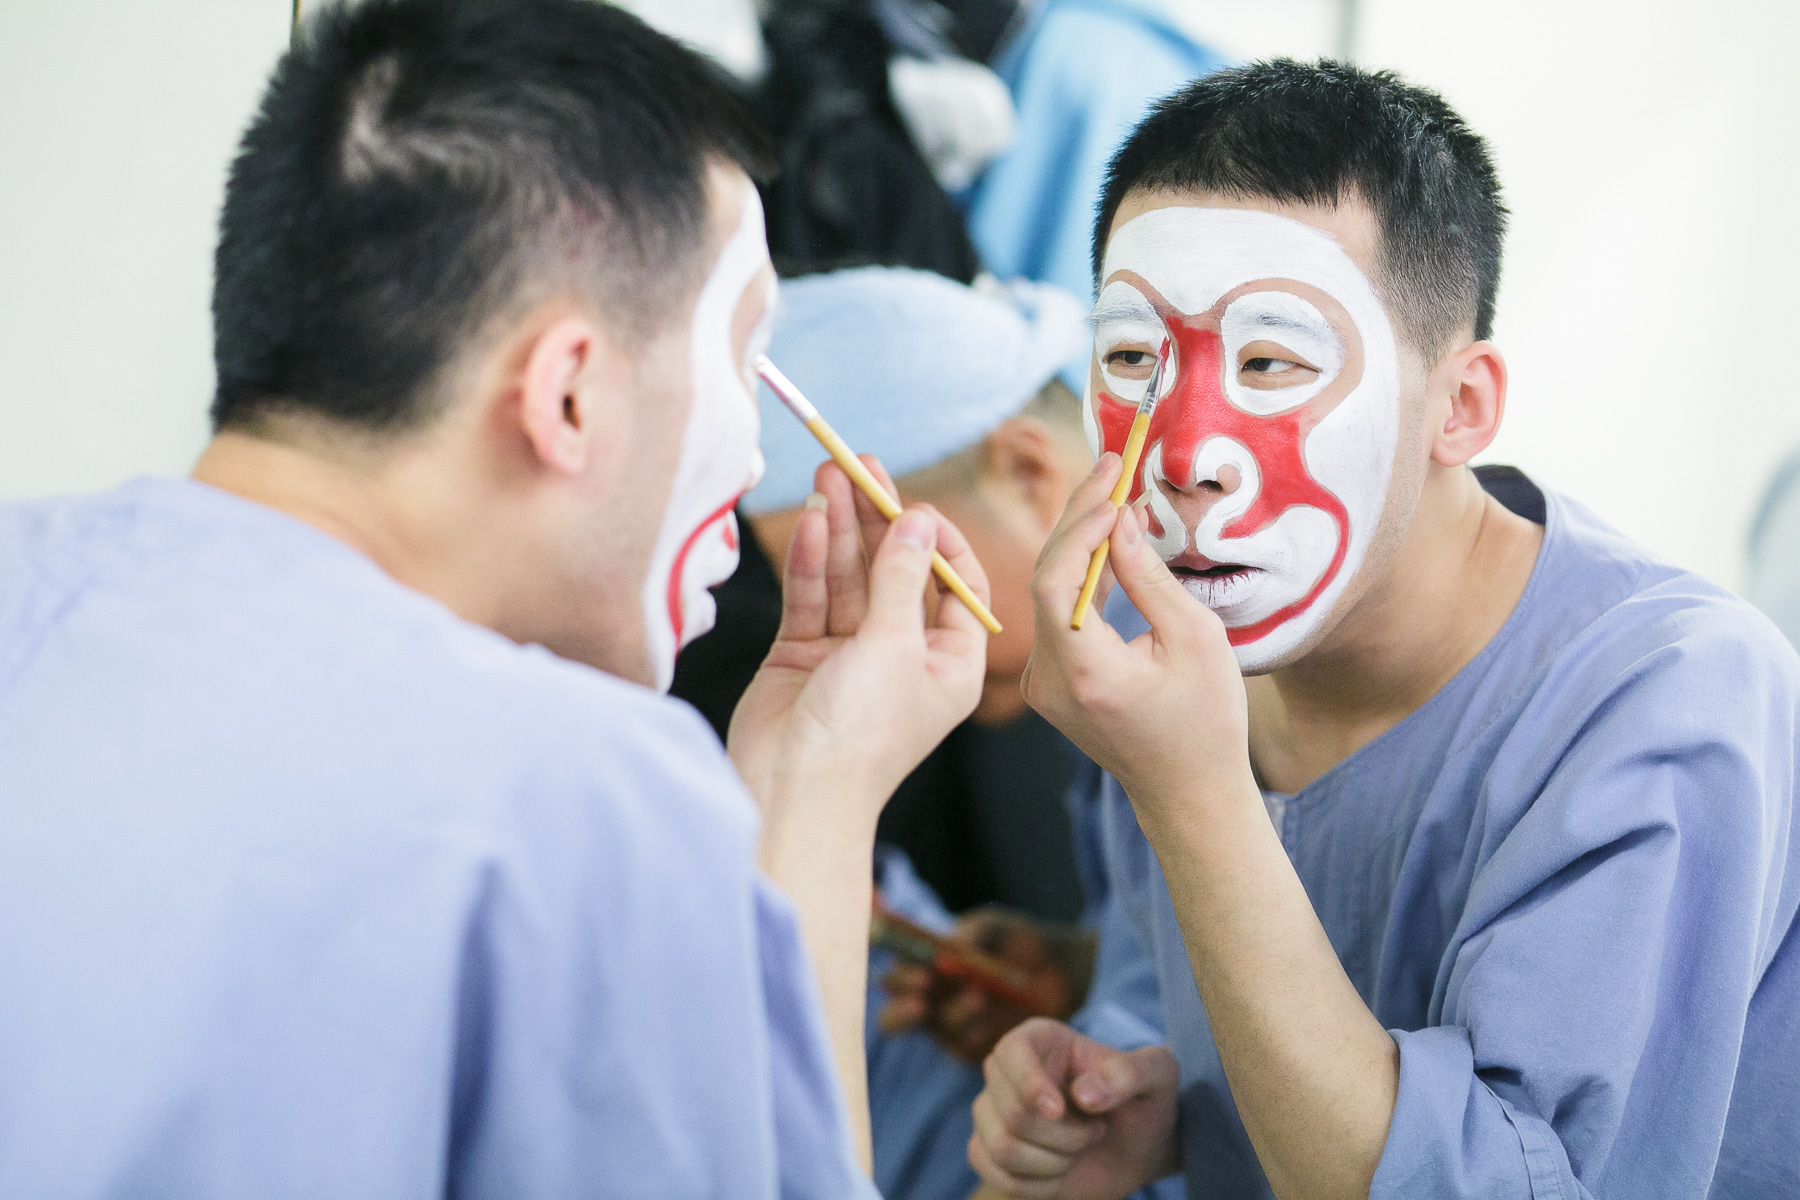 An actor puts on makeup before the China National Peking Opera Company performance of the Monkey King in Cankarjev dom Culture and Congress Center in Ljubljana, Slovenia, Dec. 31, 2015.